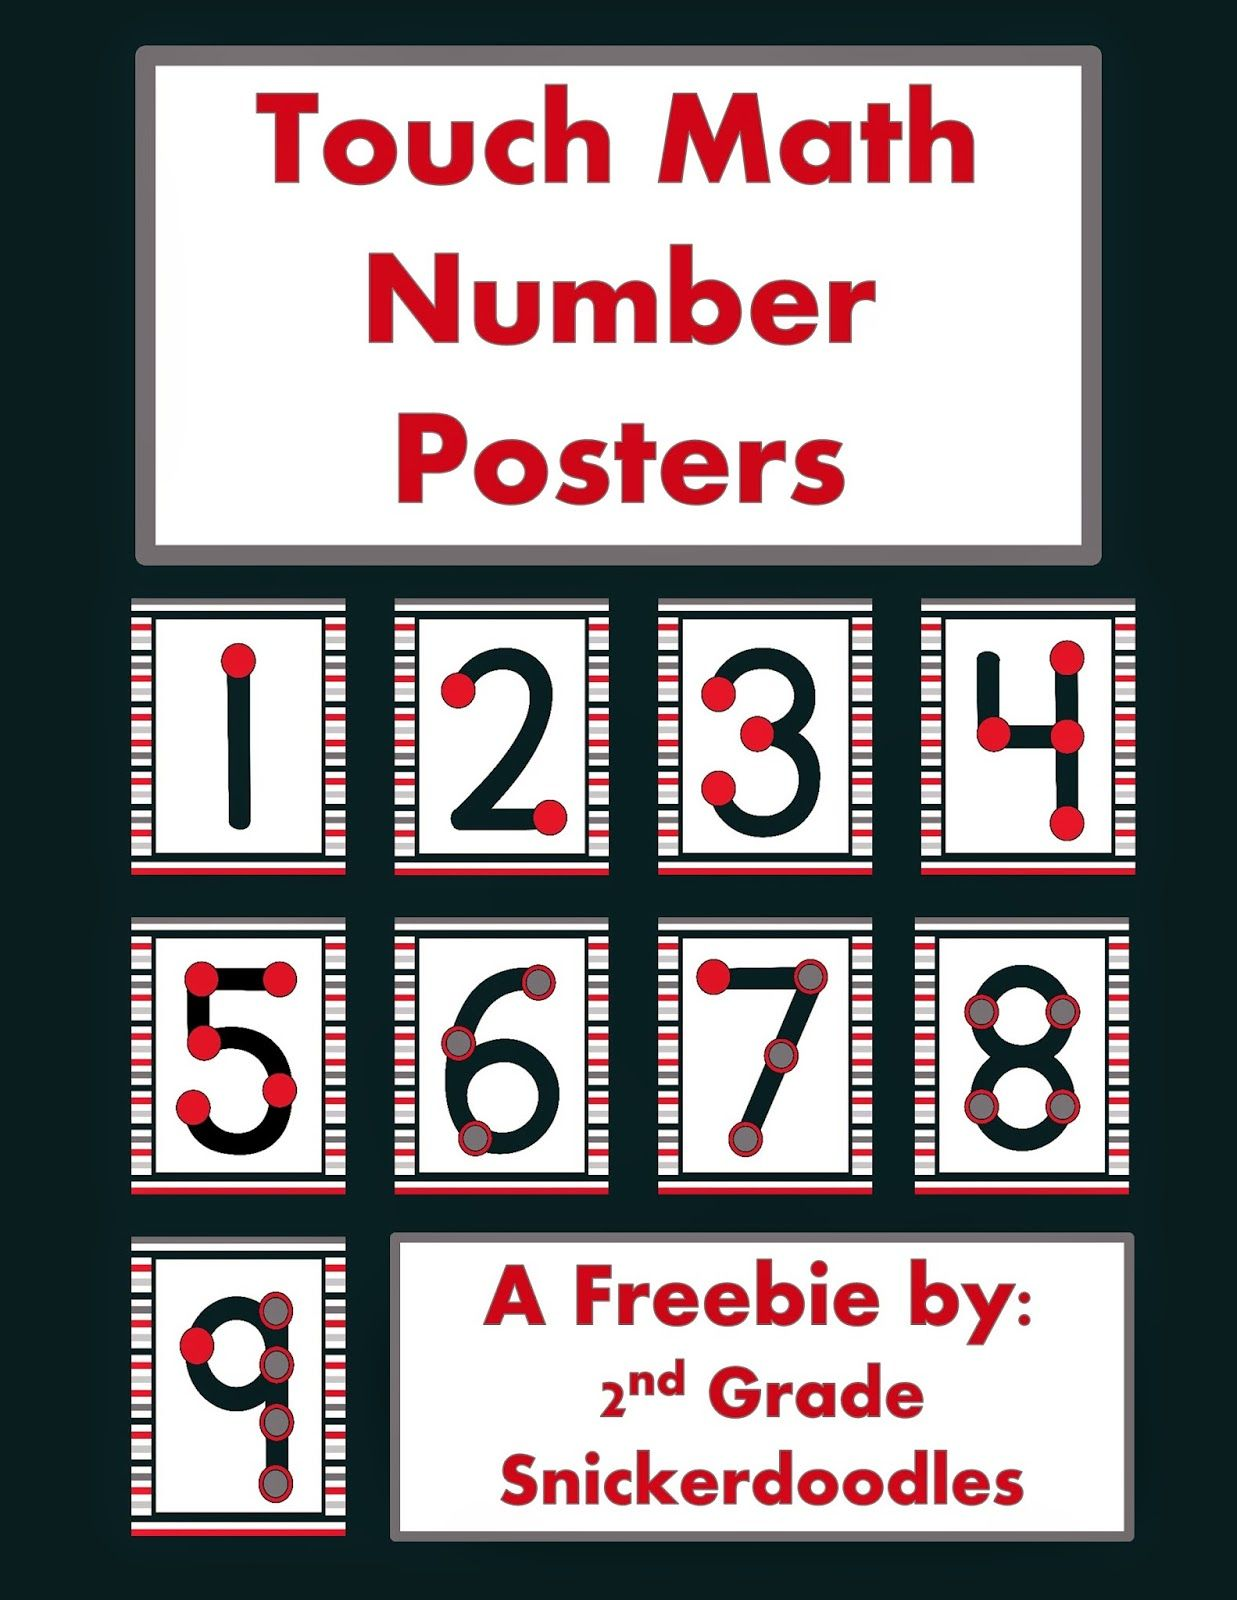 Touch Math Number Posters Freebie